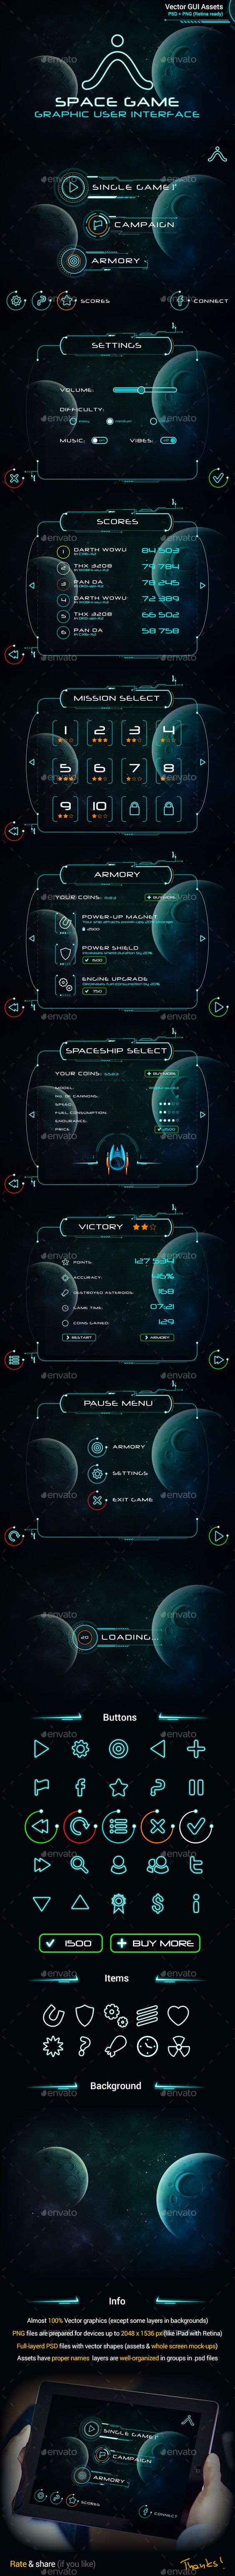 Space Game GUI Set - User Interfaces Game Assets: